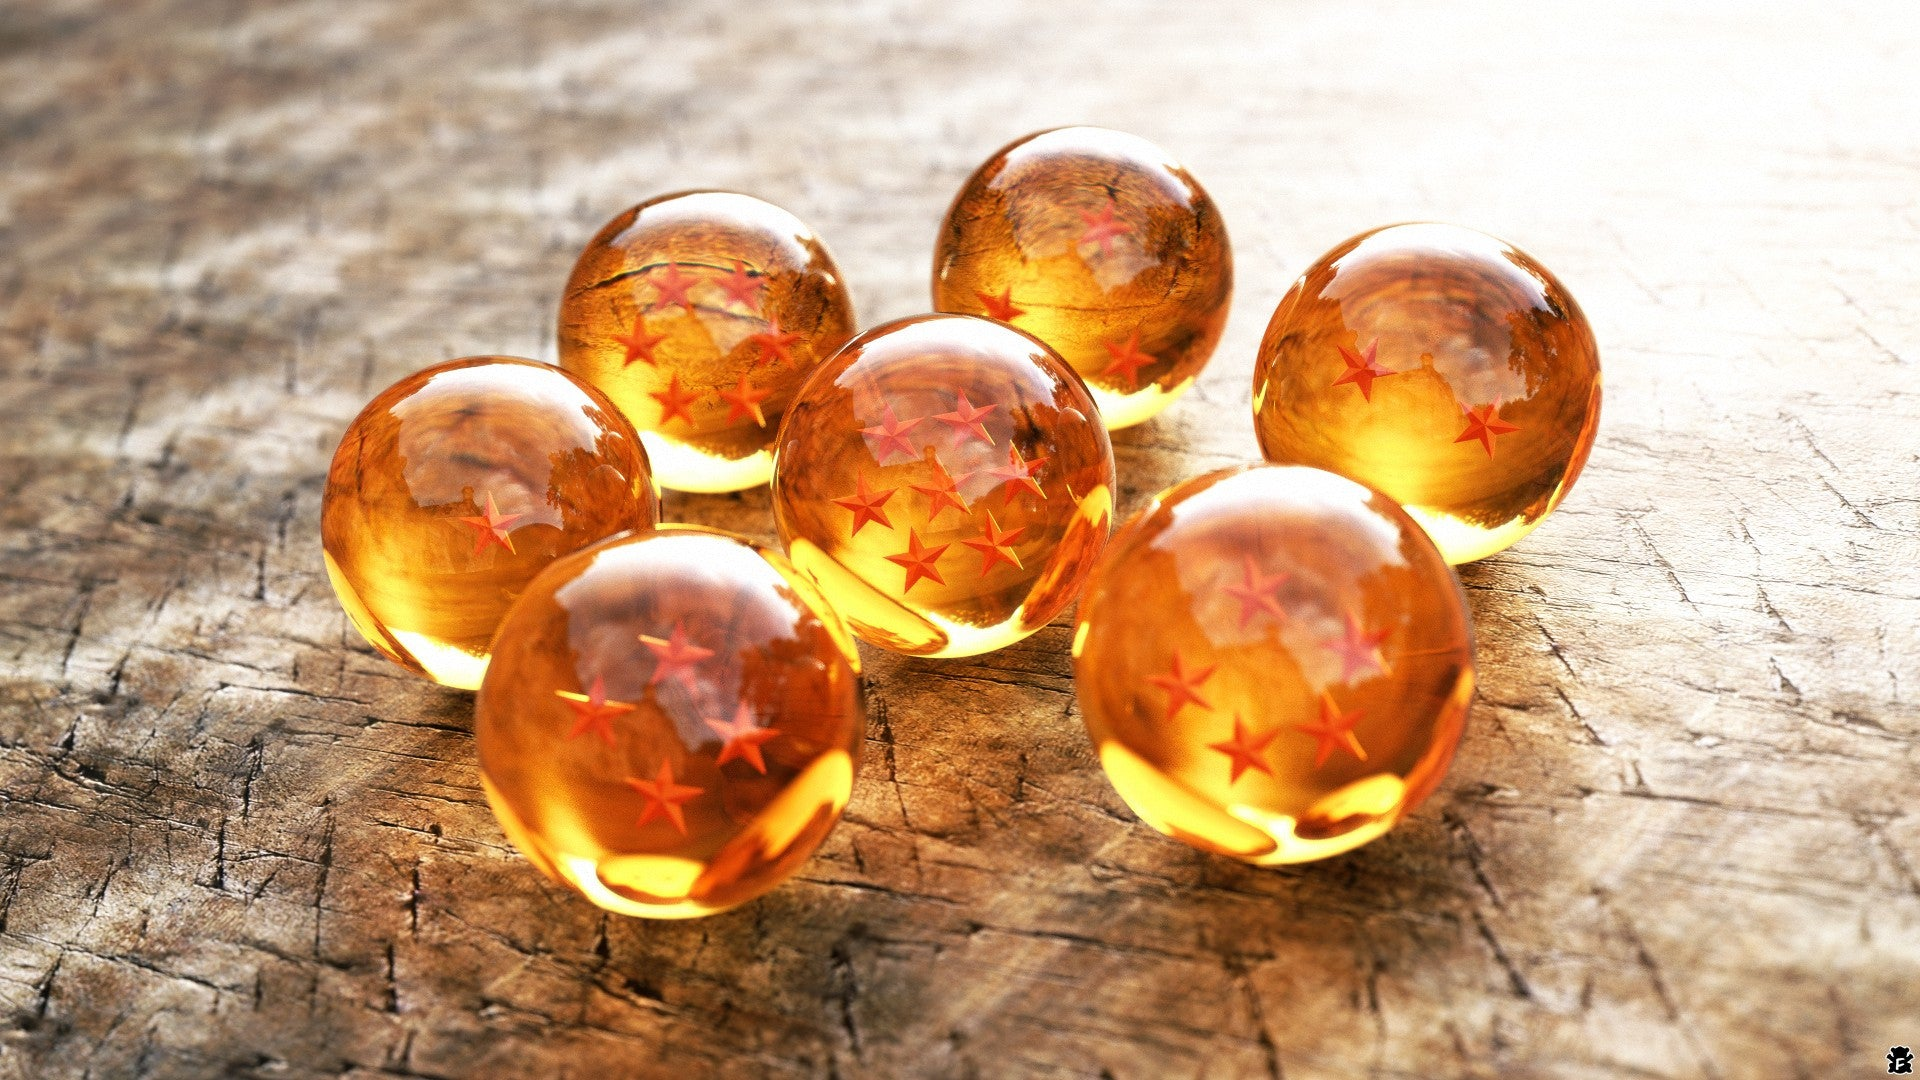 Set of 7 Dragon Balls Z real balls ,  - Final Score Products, Final Score Products